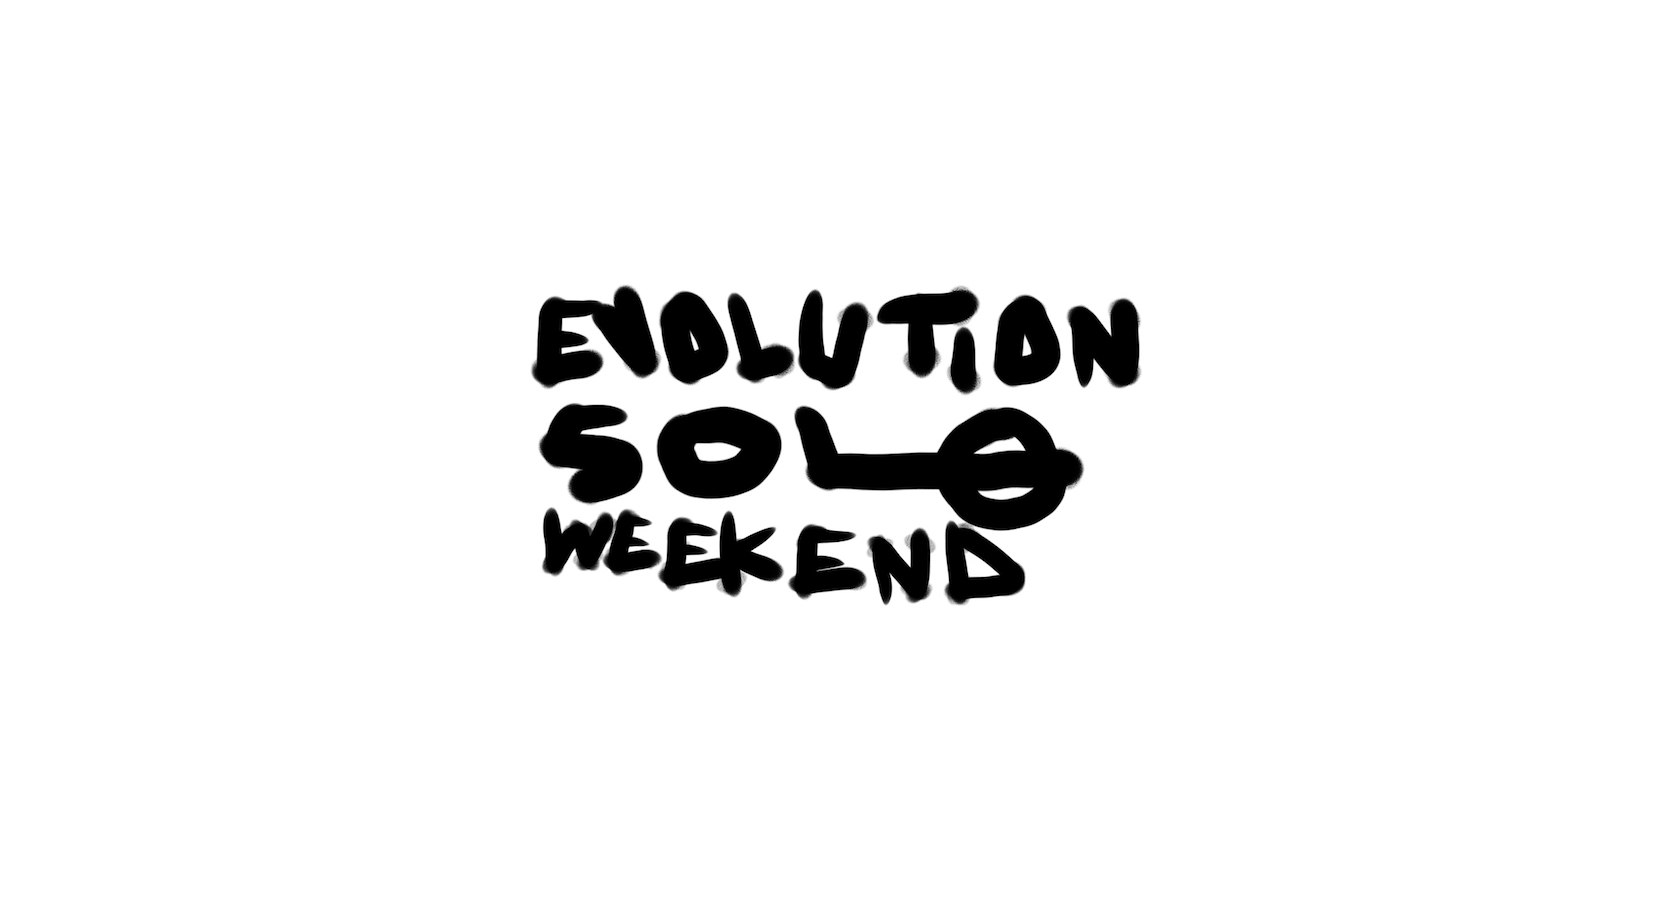 Фестиваль: EVOLUTION SOLO-WEEKEND